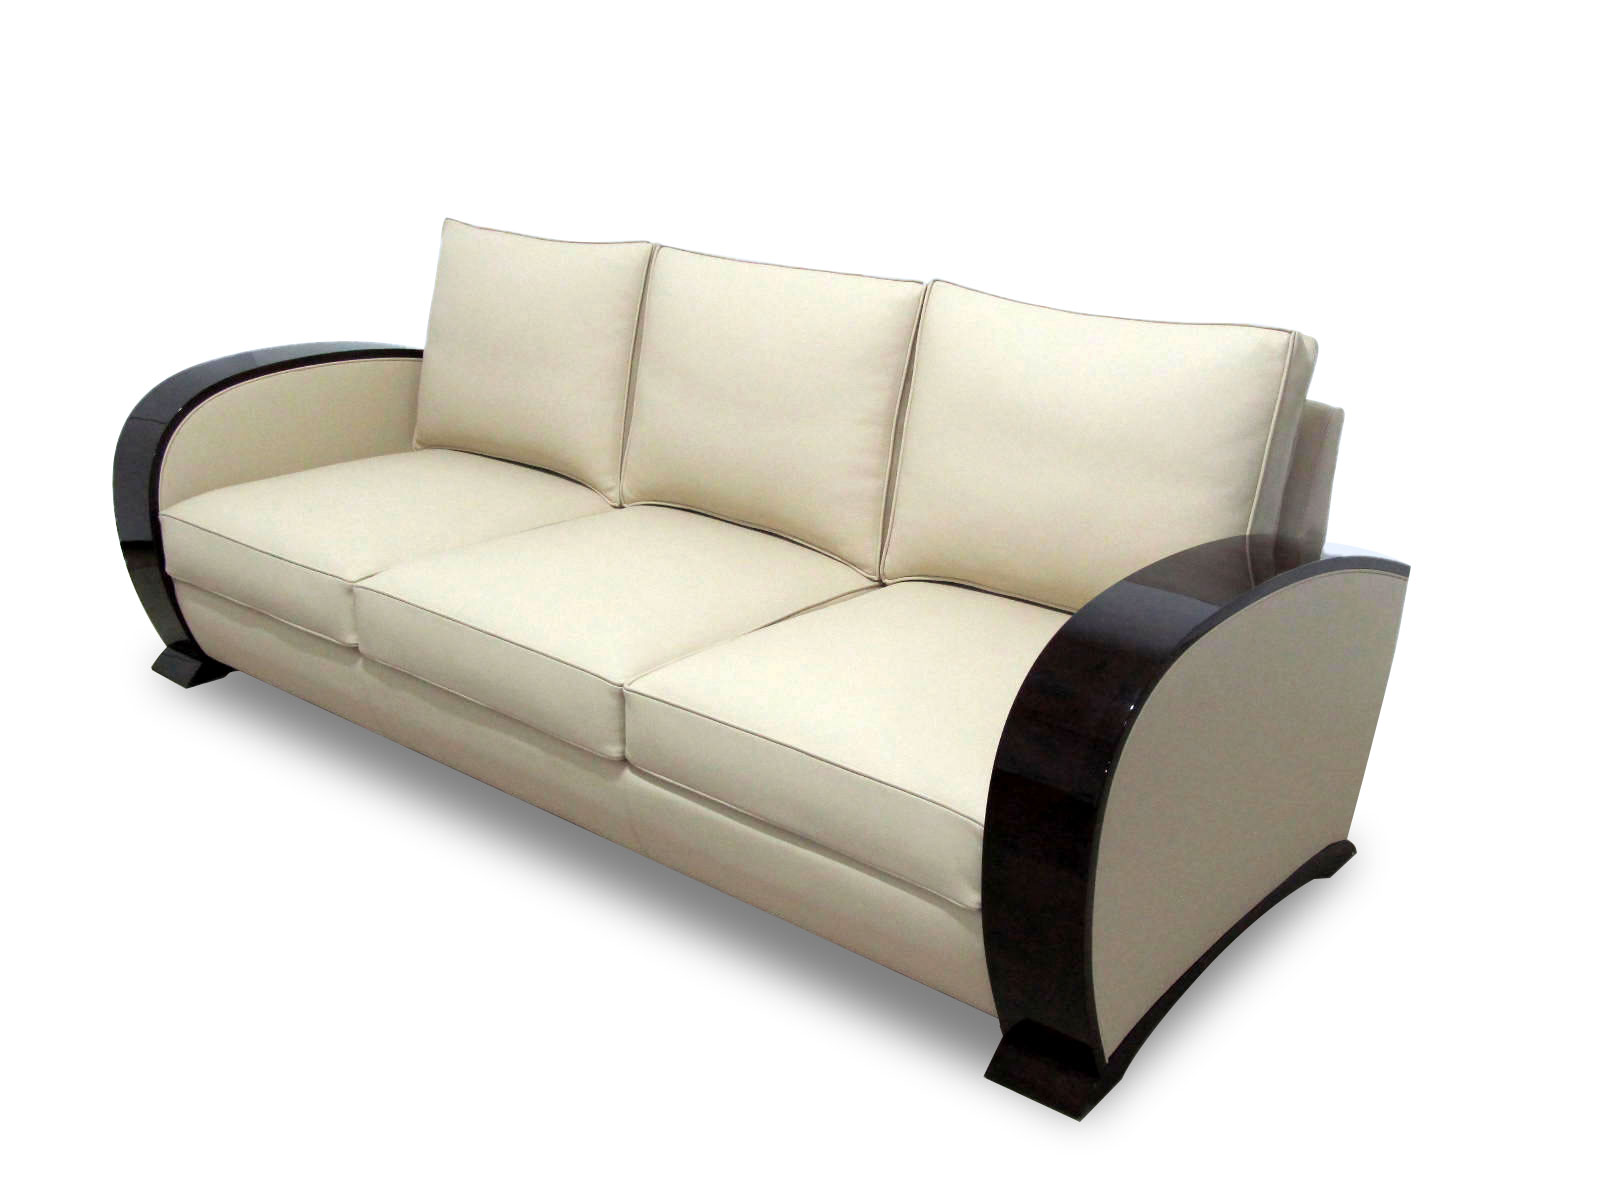 deco sofas art deco sofa beautiful as tufted on outdoor thesofa. Black Bedroom Furniture Sets. Home Design Ideas